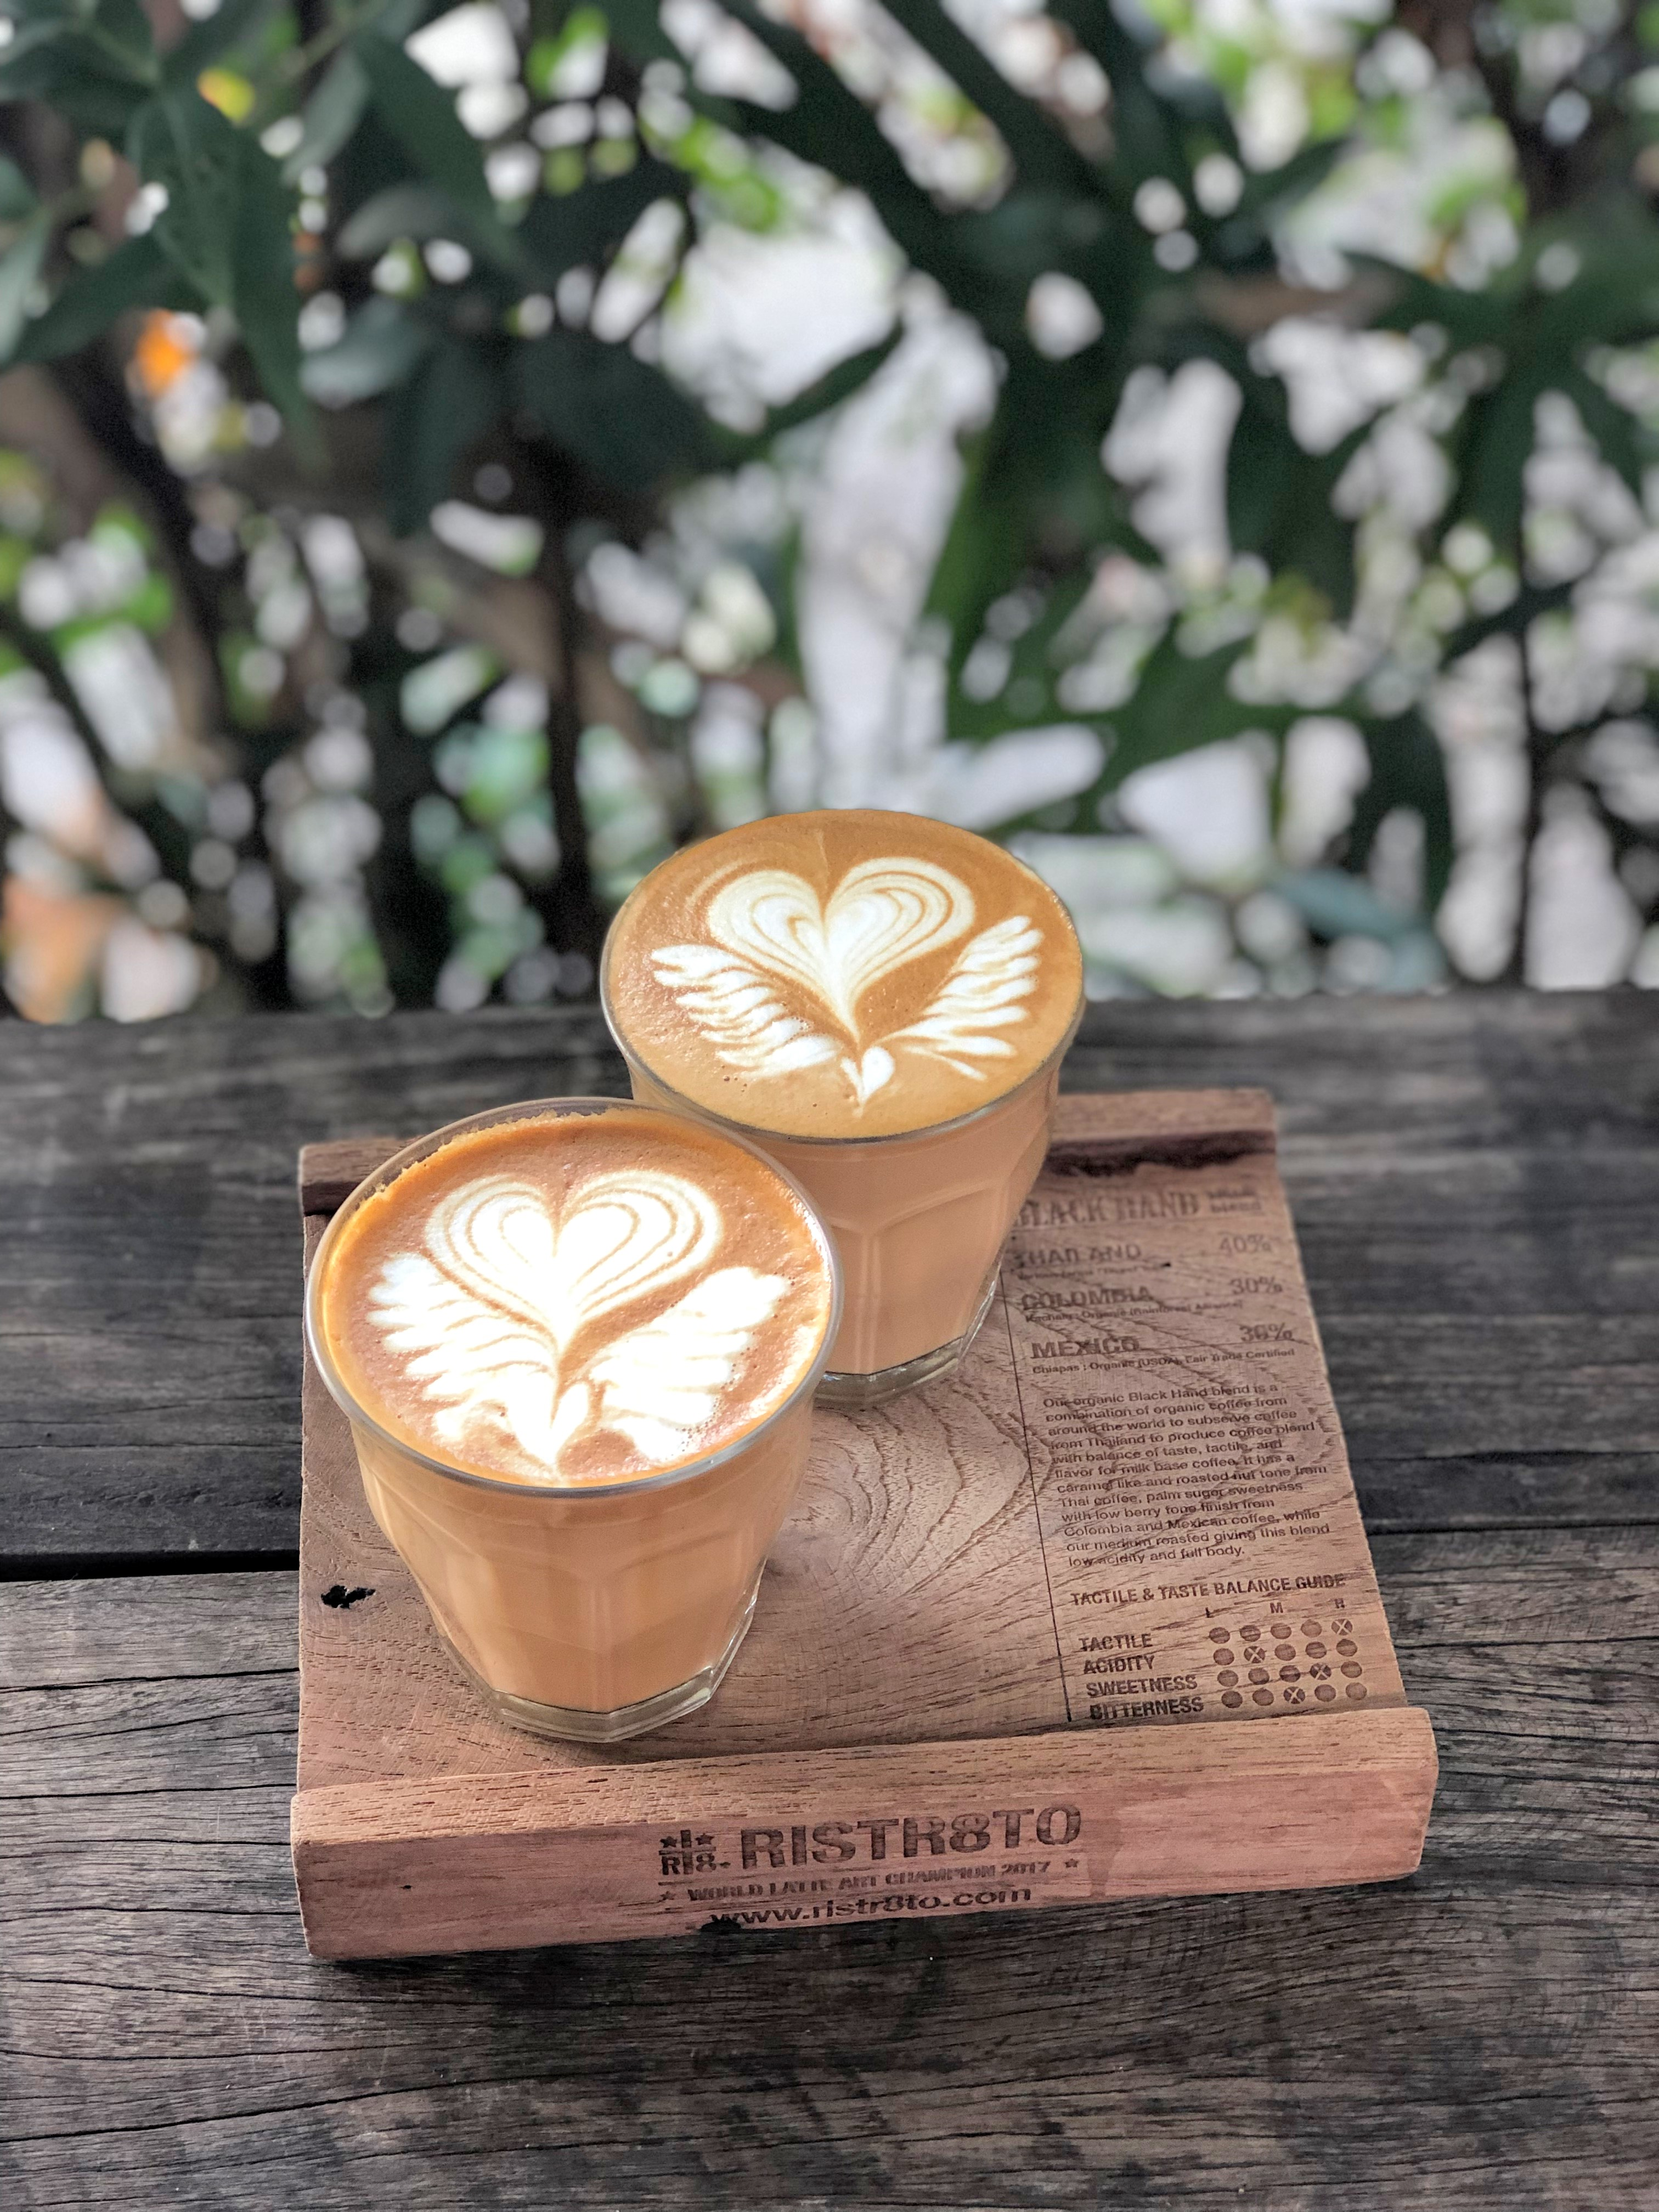 Our delicious and beautiful lattes from Ristr8to in Chiang Mai, Thailand